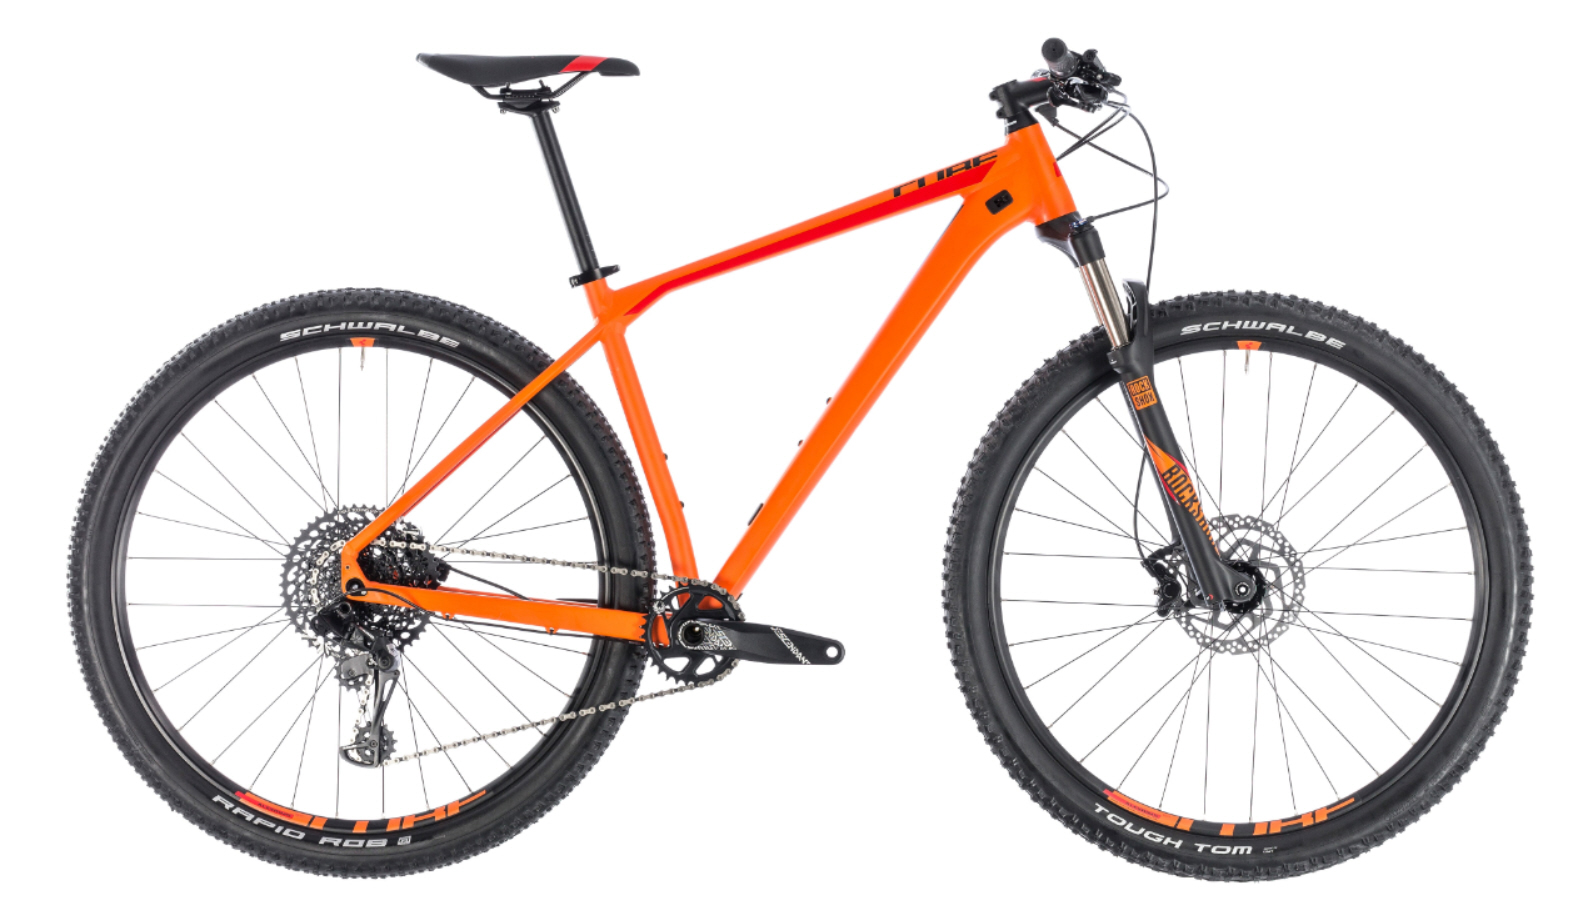 cube reaction race modell 2018 orange n red hardtails 29 zoll mountainbikes fahrr der. Black Bedroom Furniture Sets. Home Design Ideas